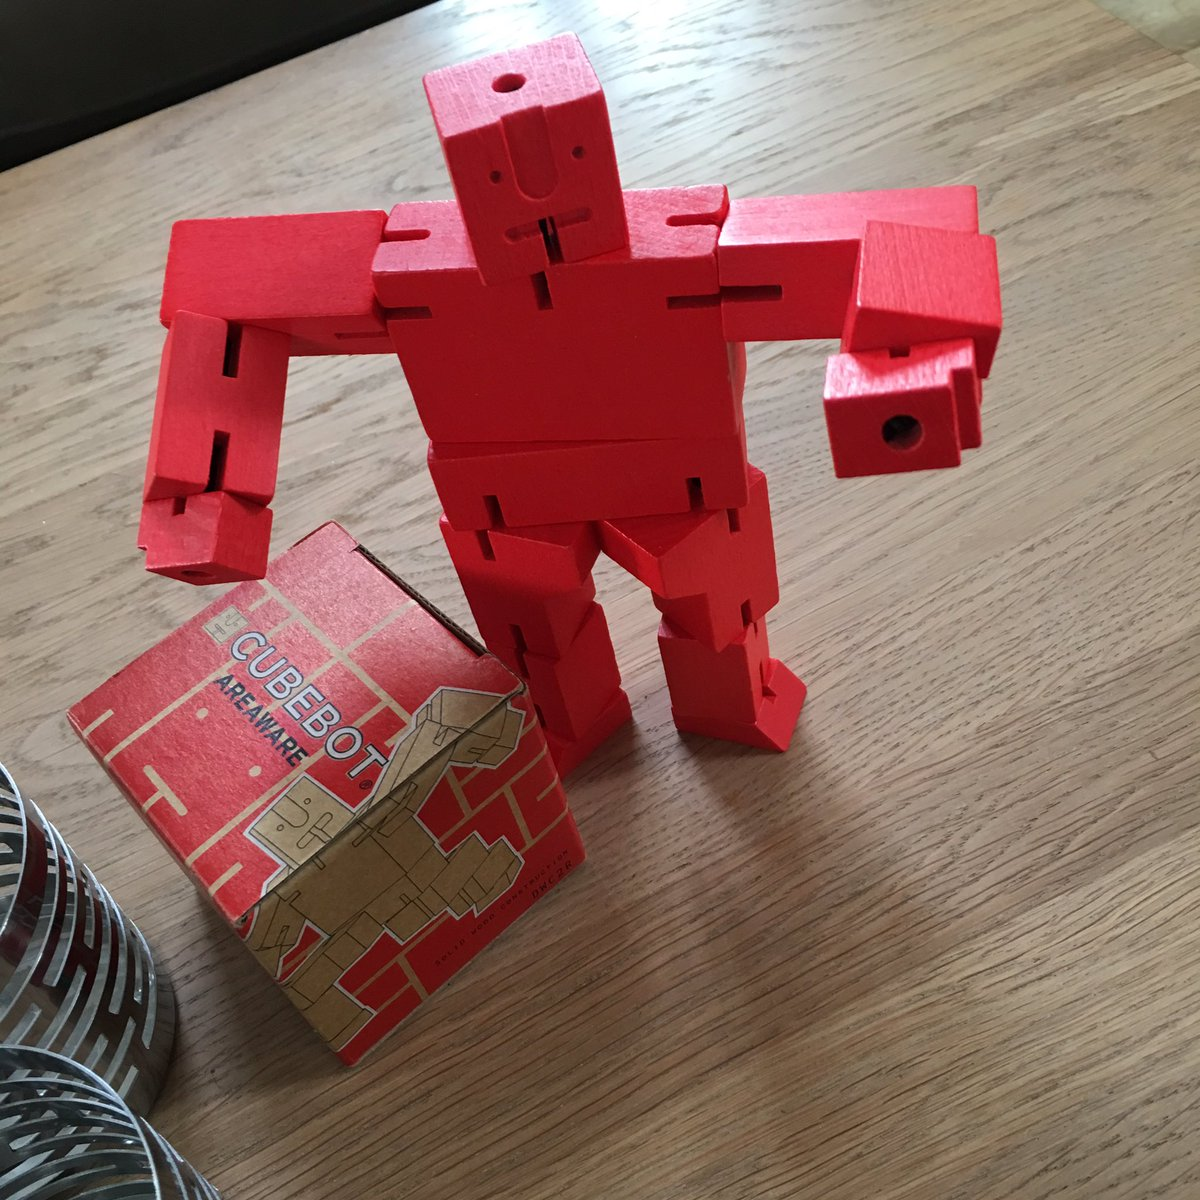 Ian Mcque On Twitter Love My Cubebot From Areaware Doubt Ill